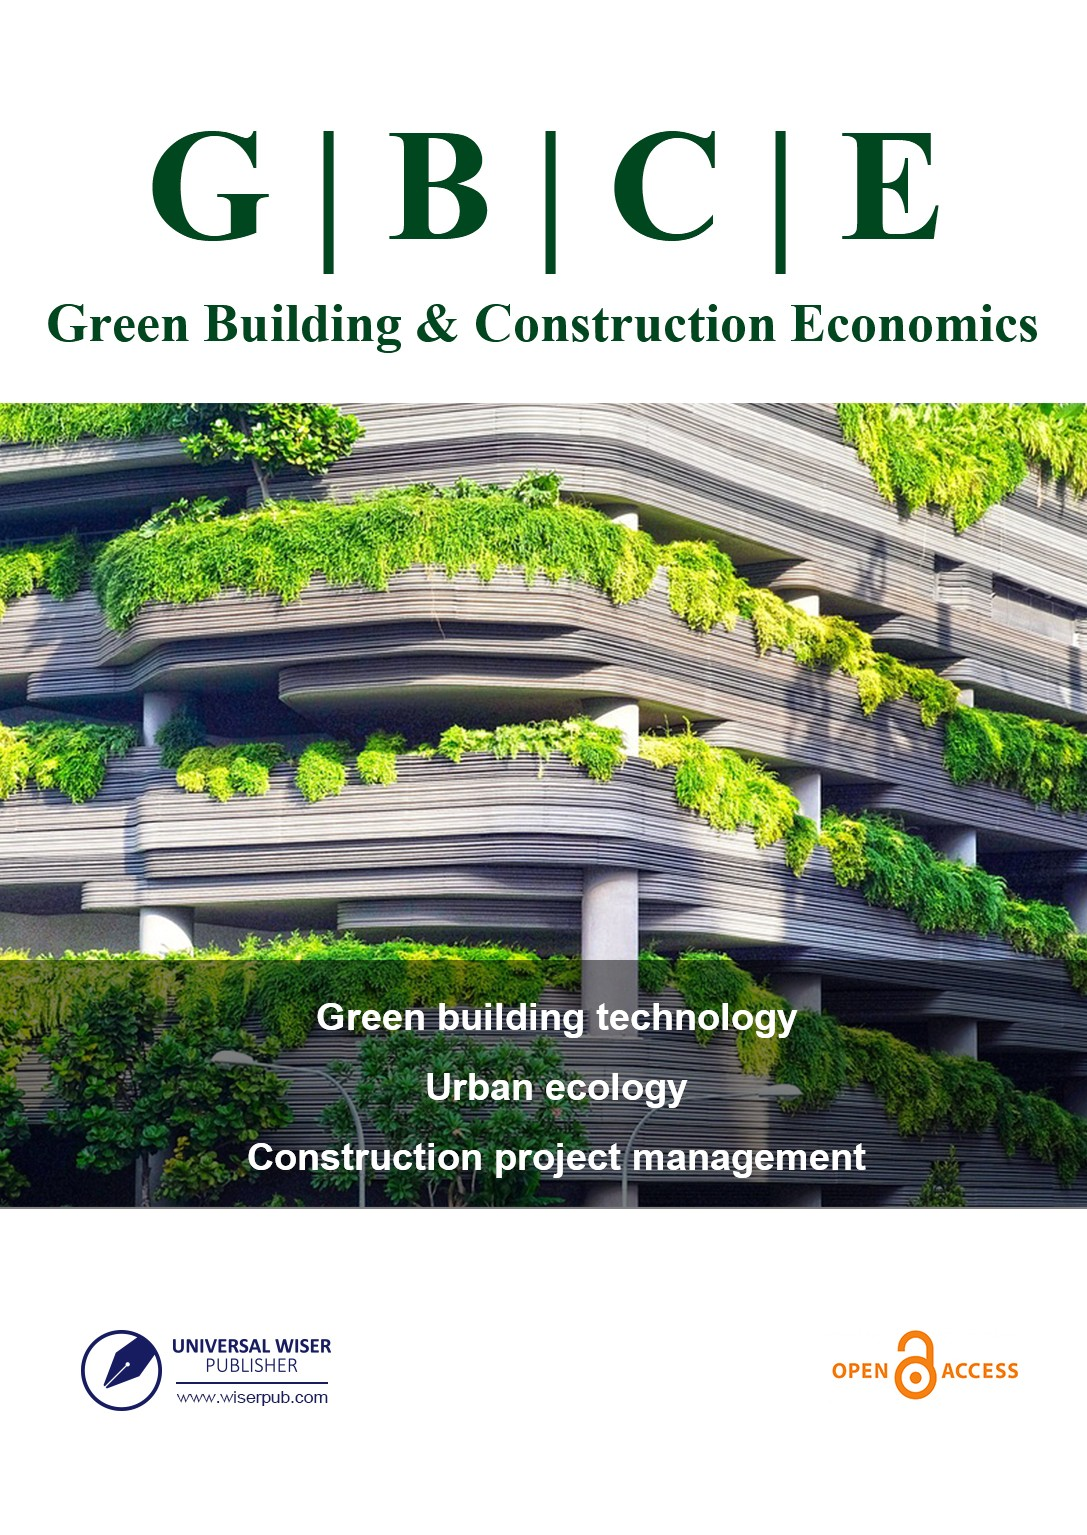 Green Building & Construction Economics